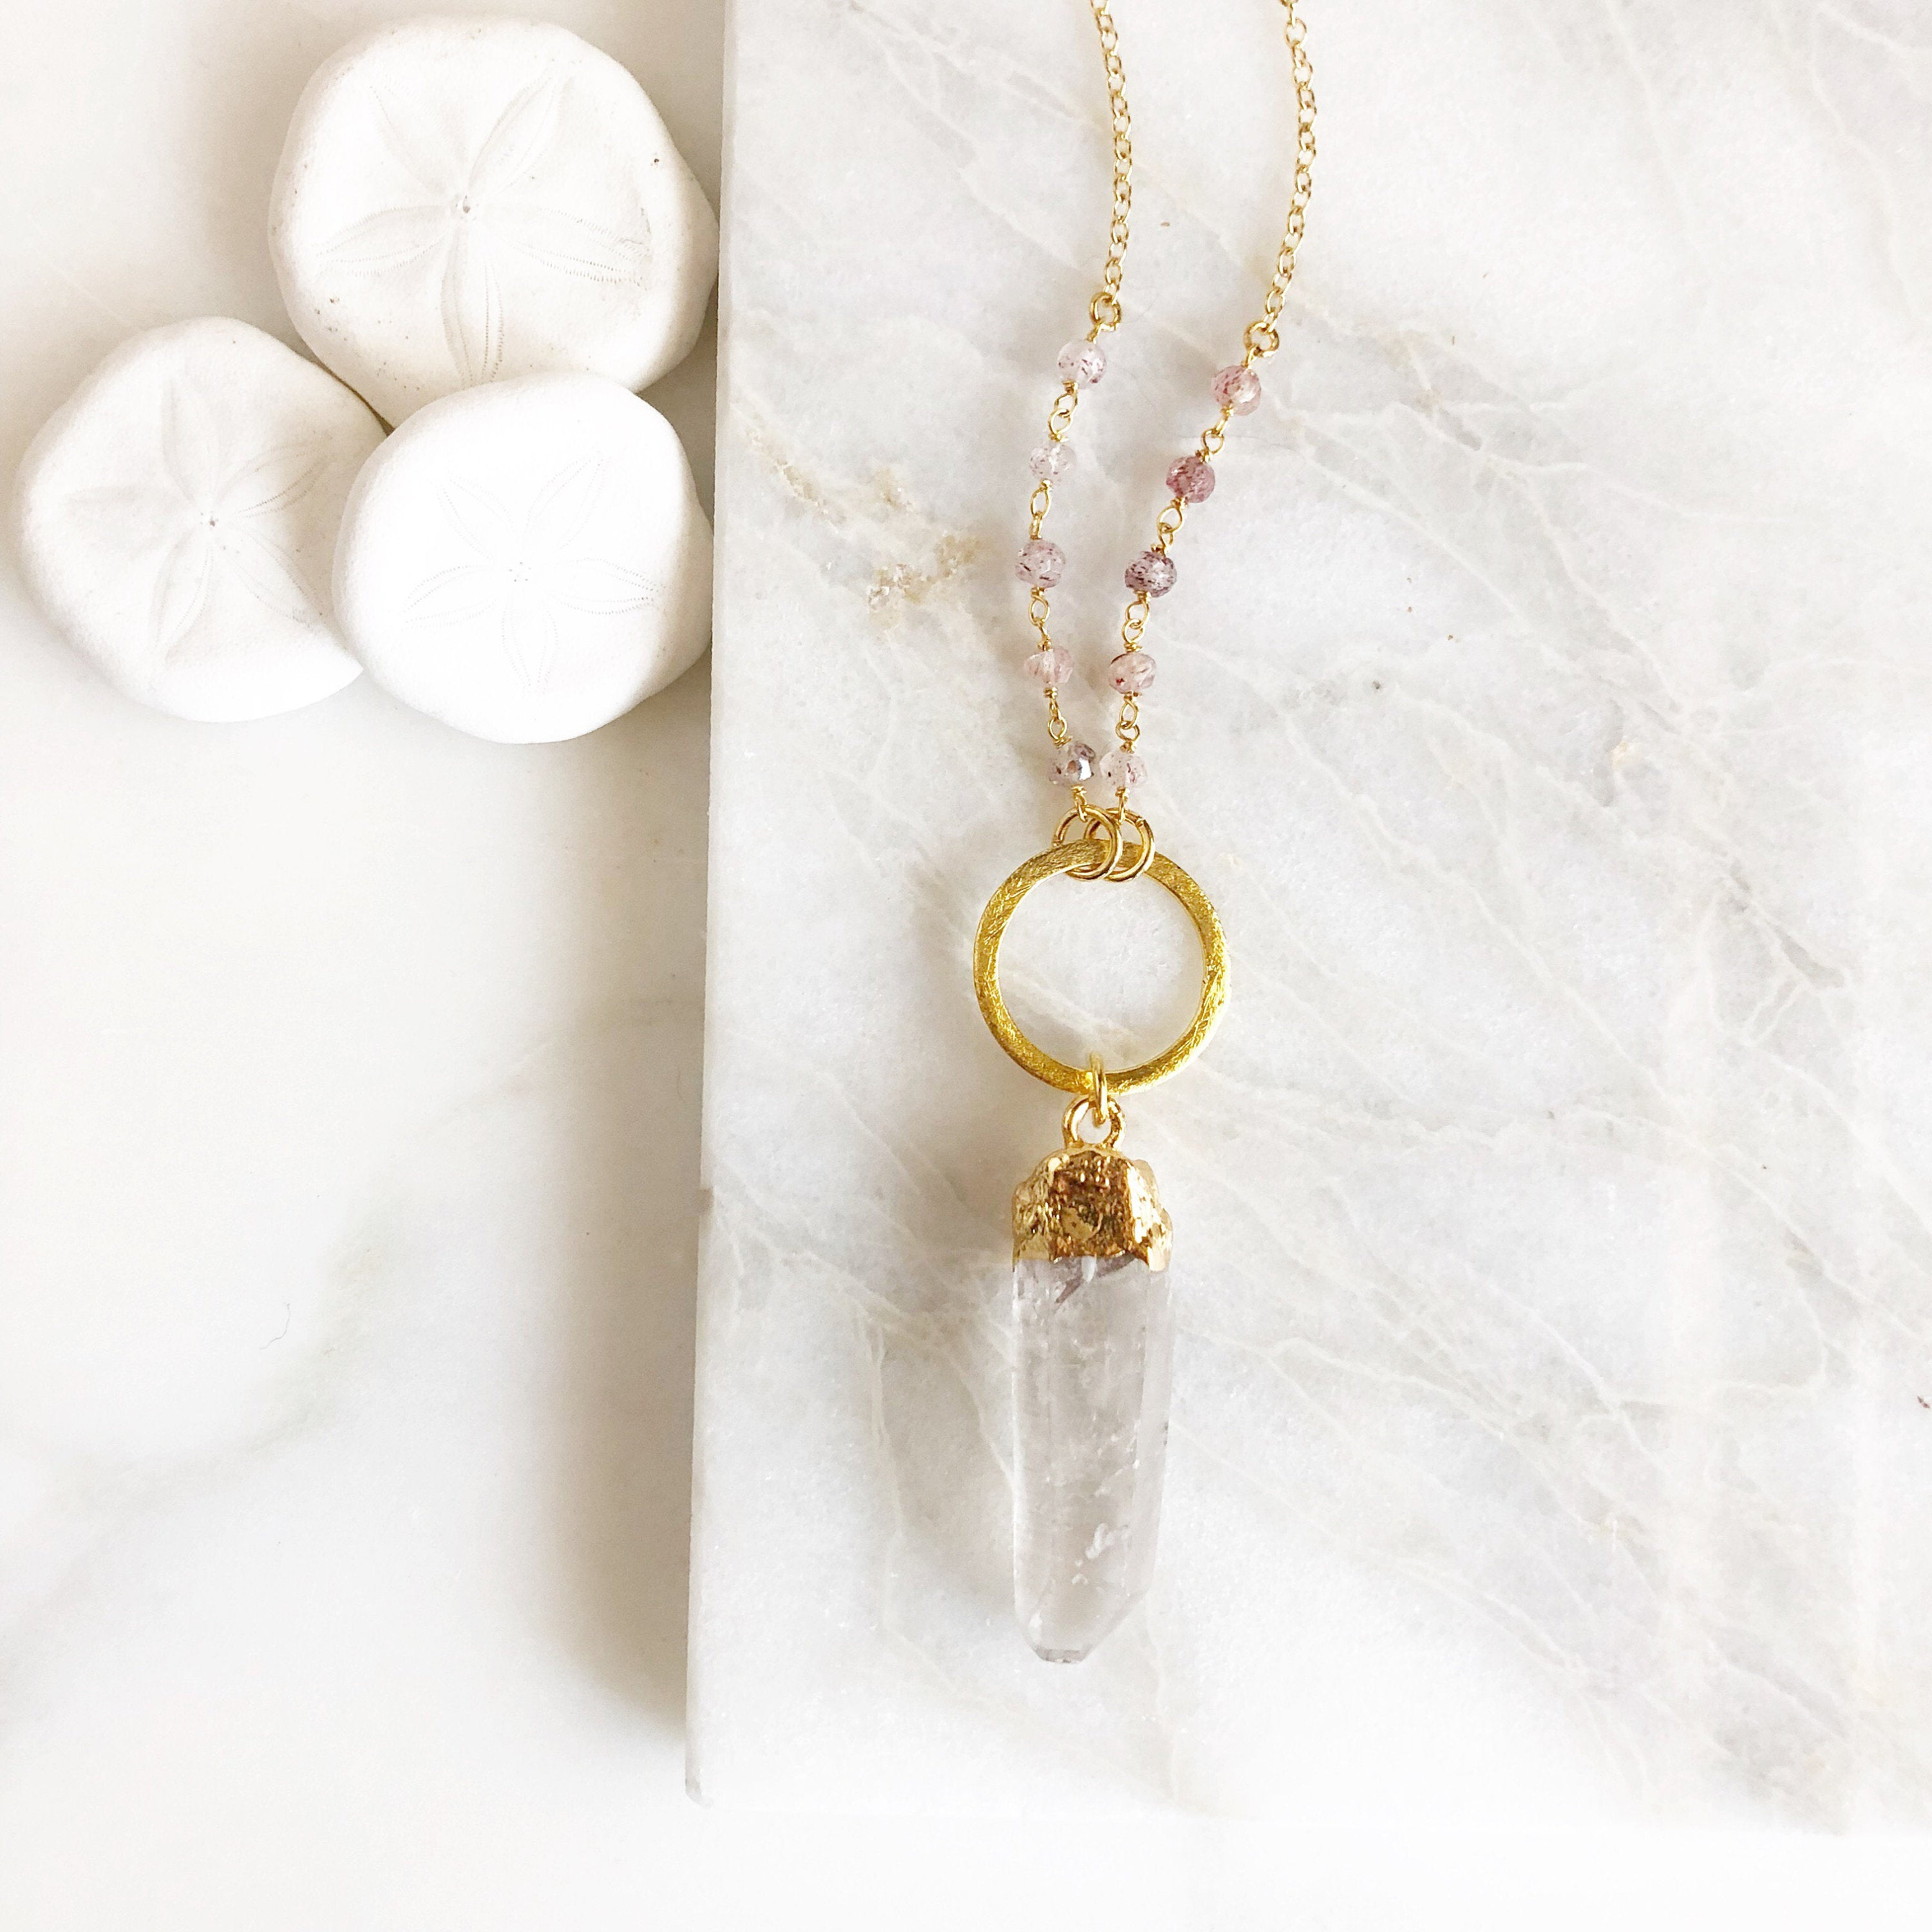 Long Stone Necklace Long Crystal Necklace with Strawberry Quartz Beaded Chain in Gold. Long Boho Crystal Necklace.